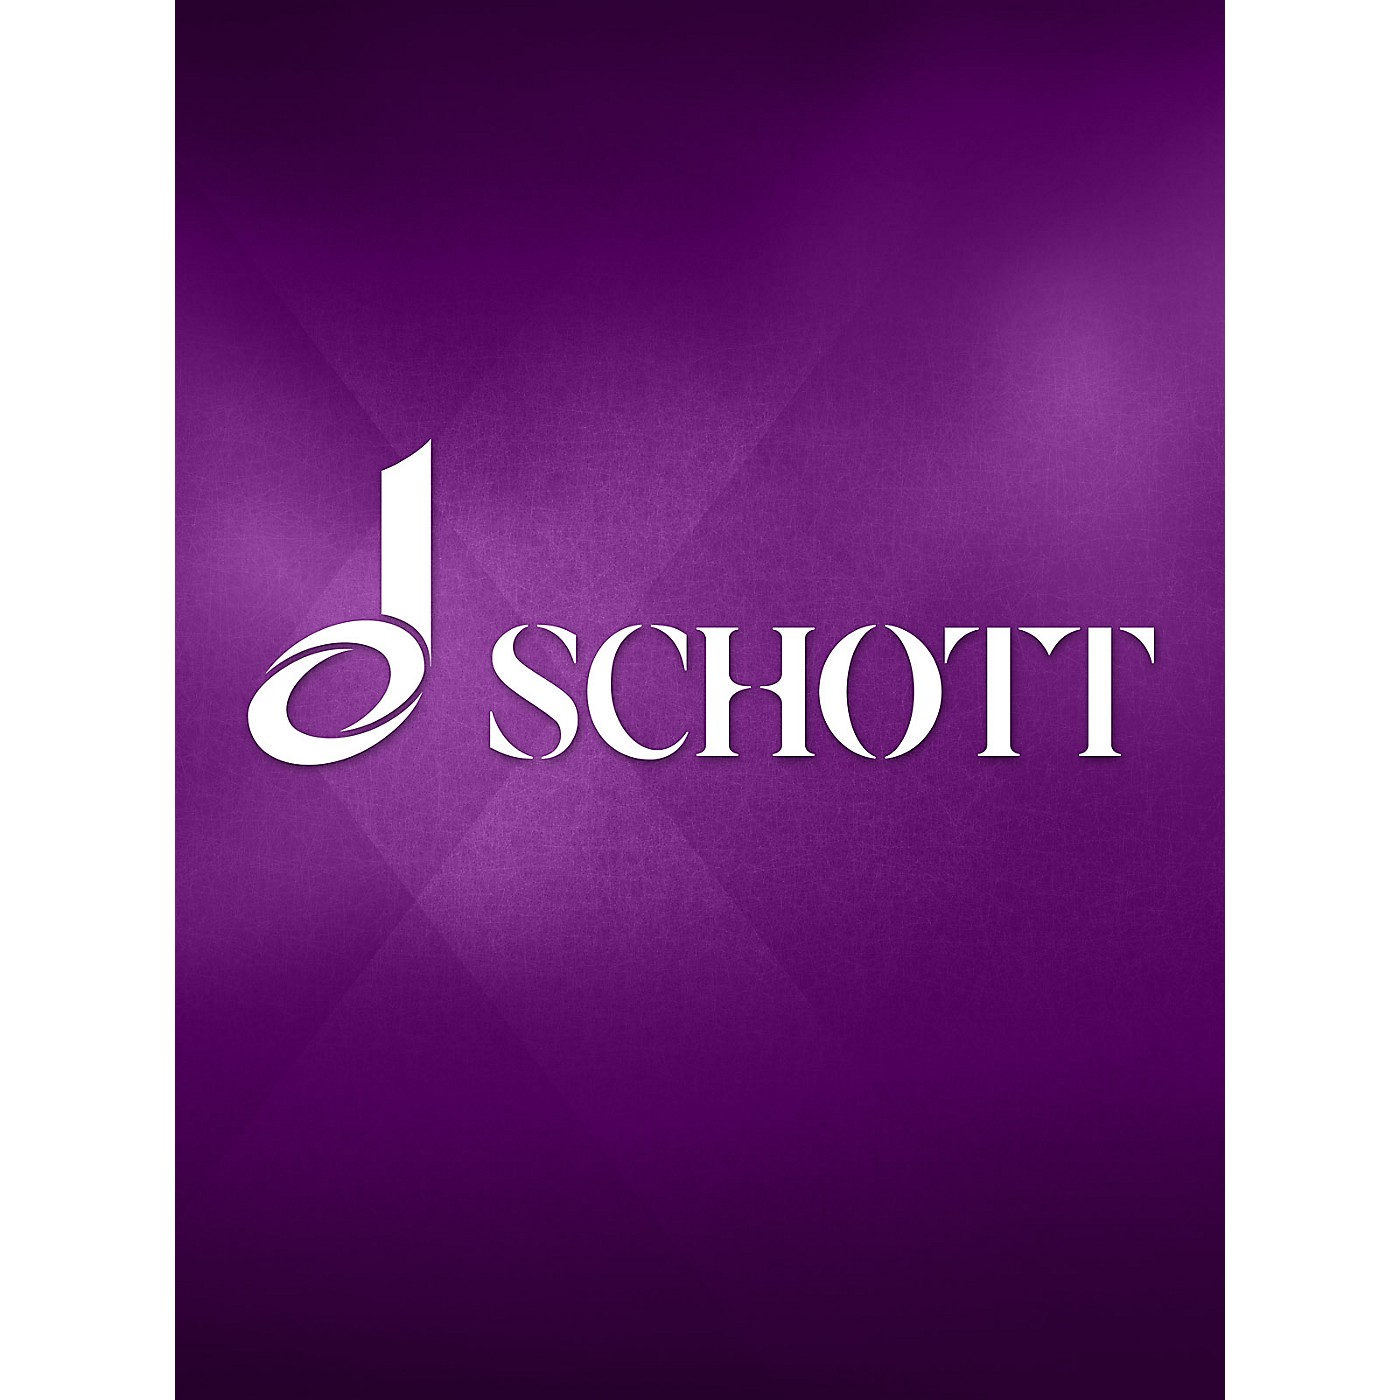 Mobart Music Publications/Schott Helicon 3 Compositions for Piano (Album IV) Schott Series Softcover thumbnail